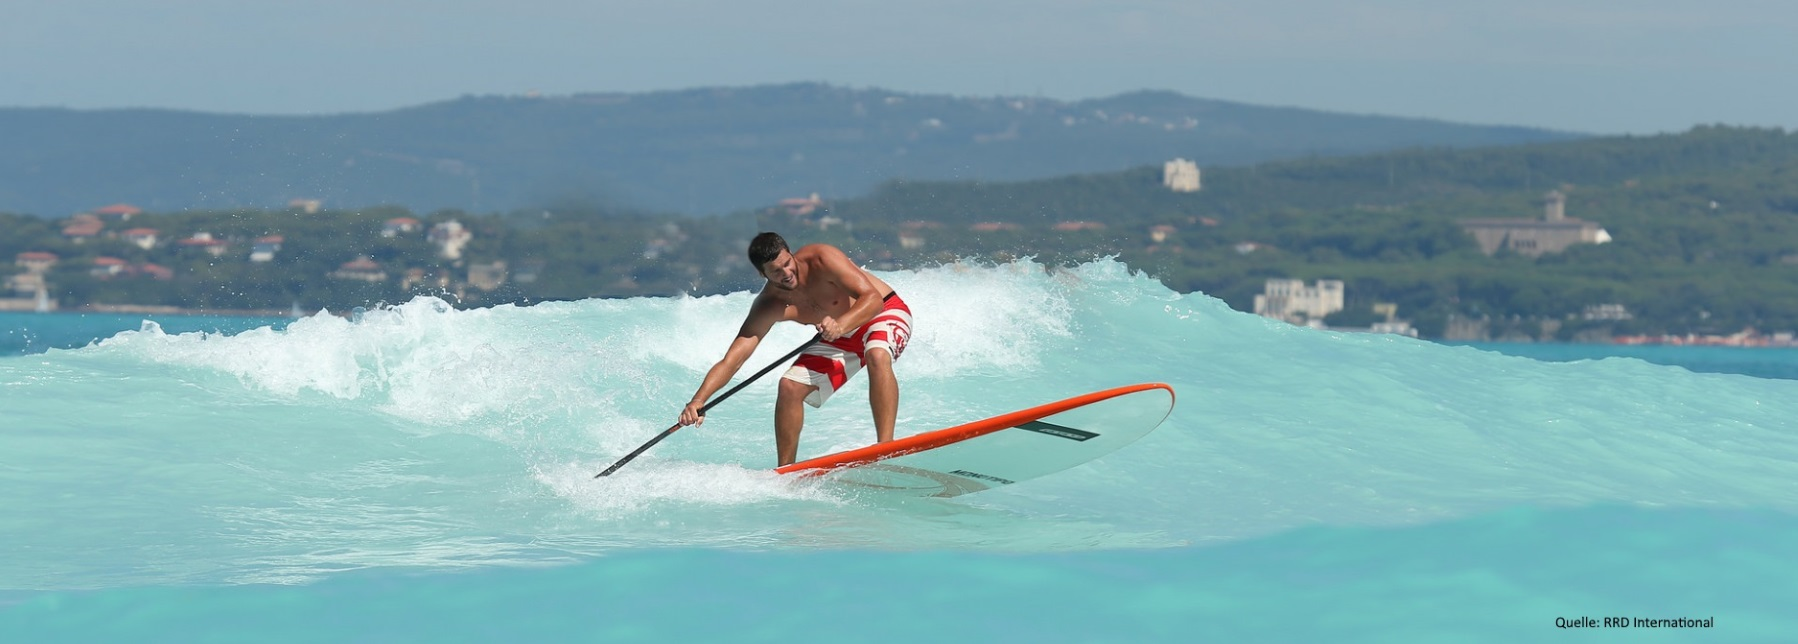 stand_up_paddling_SUP